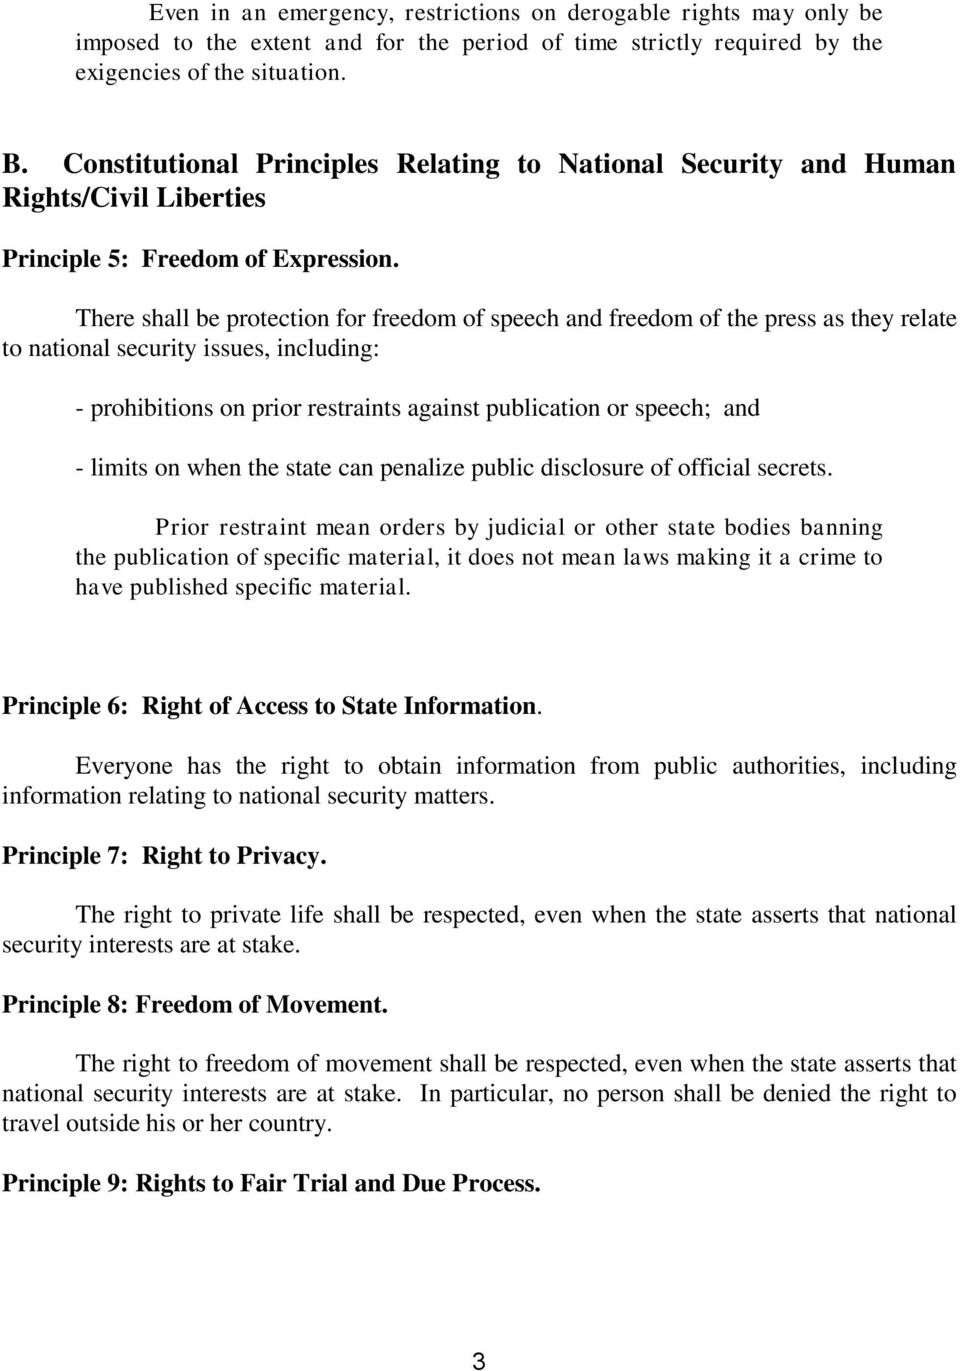 There shall be protection for freedom of speech and freedom of the press as they relate to national security issues, including: - prohibitions on prior restraints against publication or speech; and -